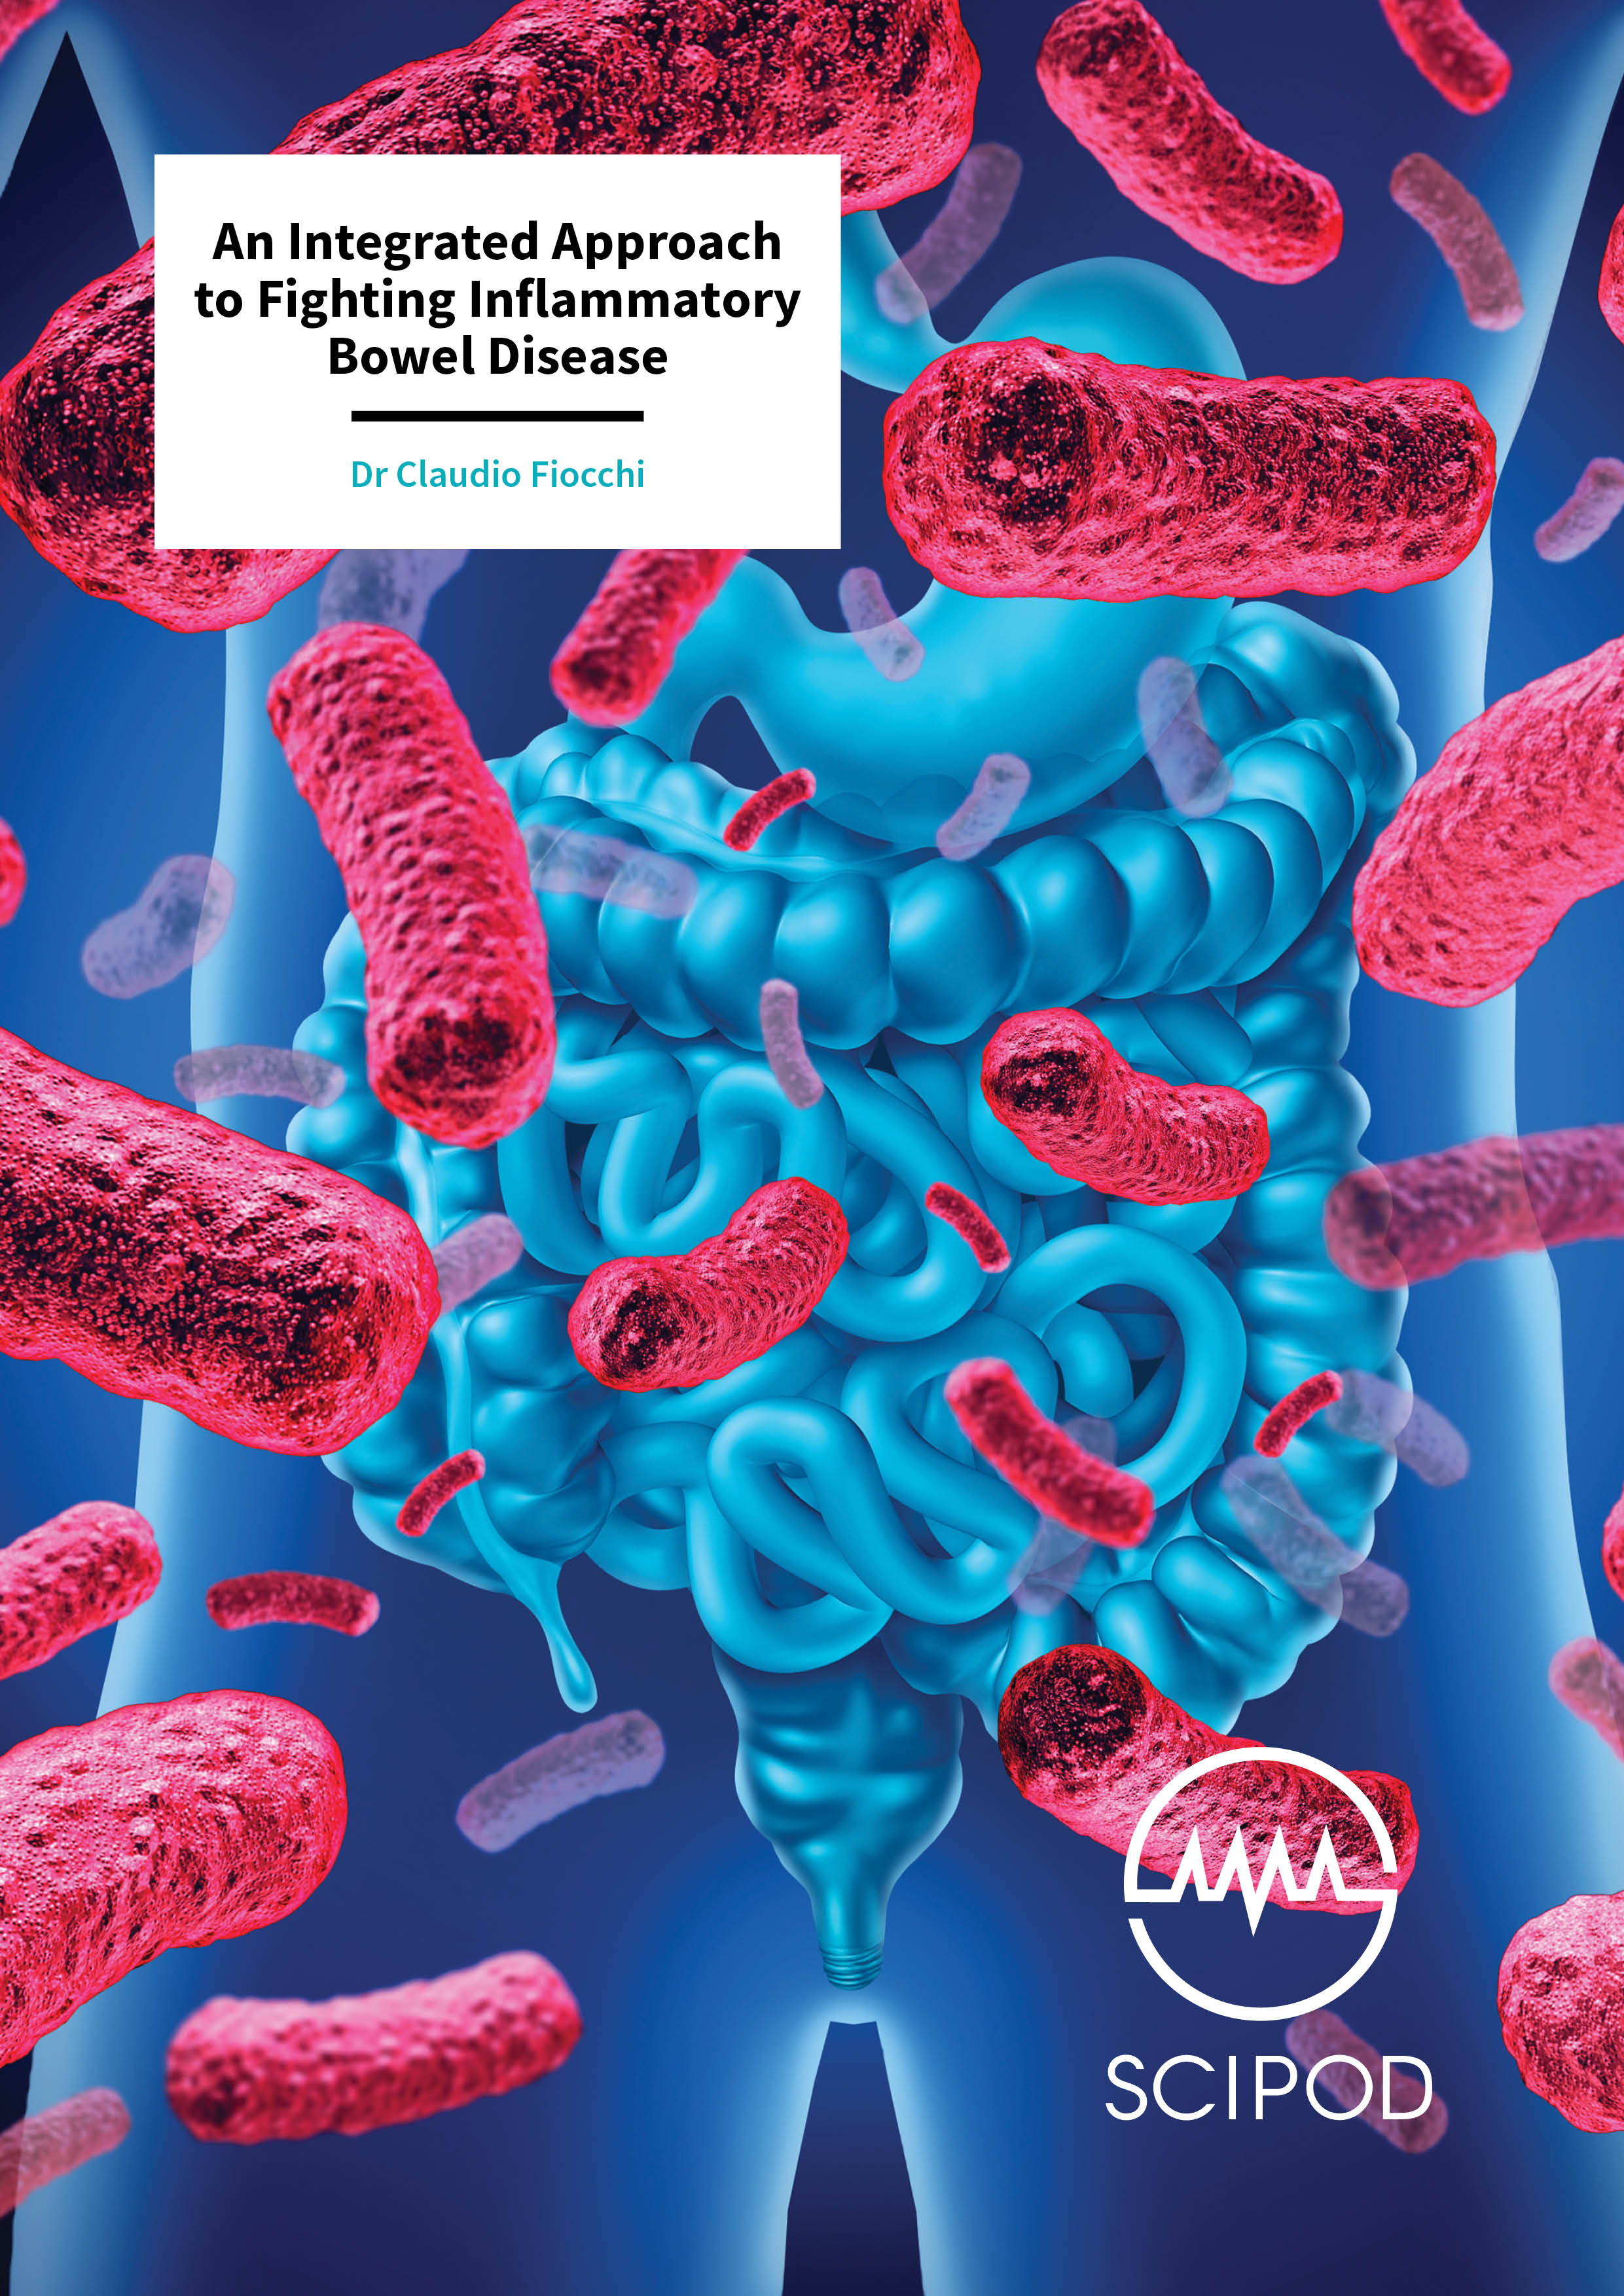 An Integrated Approach To Fighting Inflammatory Bowel Disease – Dr Claudio Fiocchi, Lerner Research Institute, Cleveland Clinic